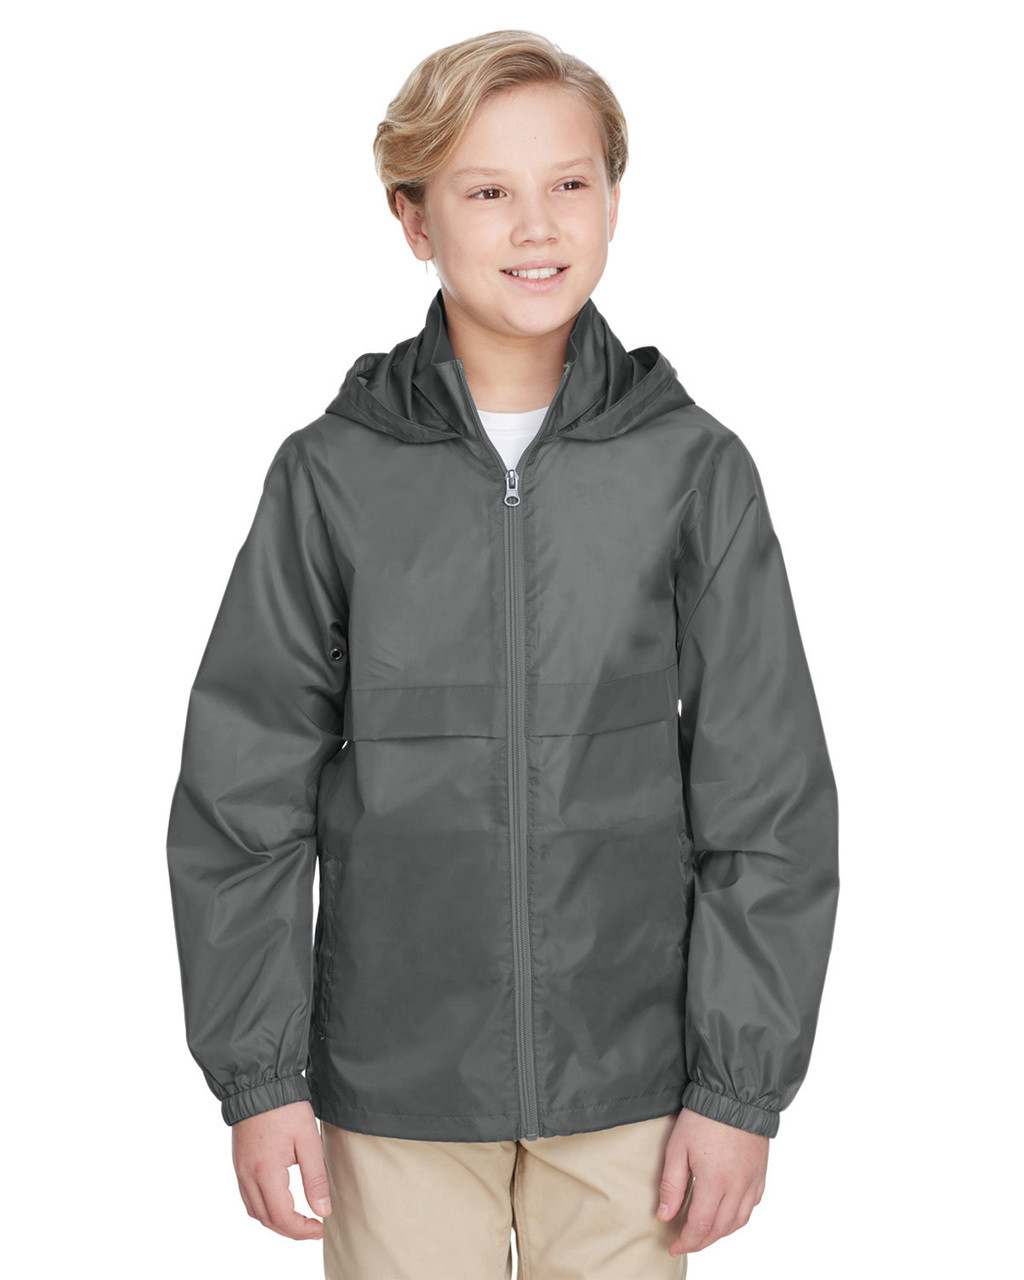 Sport Graphite - TT73Y Team 365 Youth Zone Protect Lightweight Jacket  | BlankClothing.ca